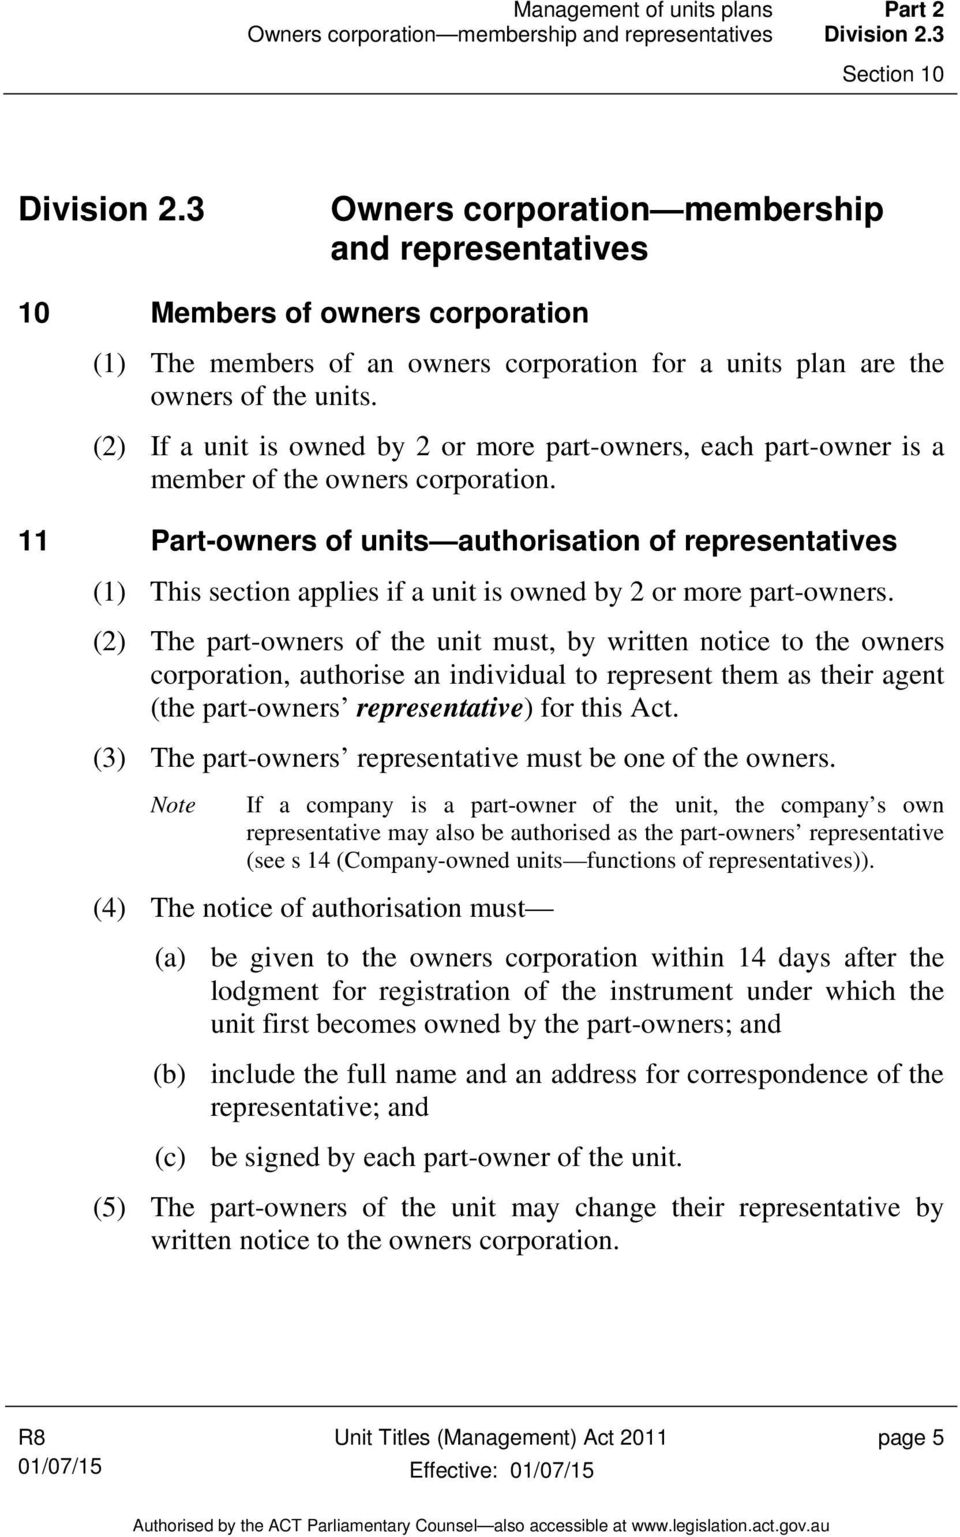 (2) If a unit is owned by 2 or more part-owners, each part-owner is a member of the owners corporation.